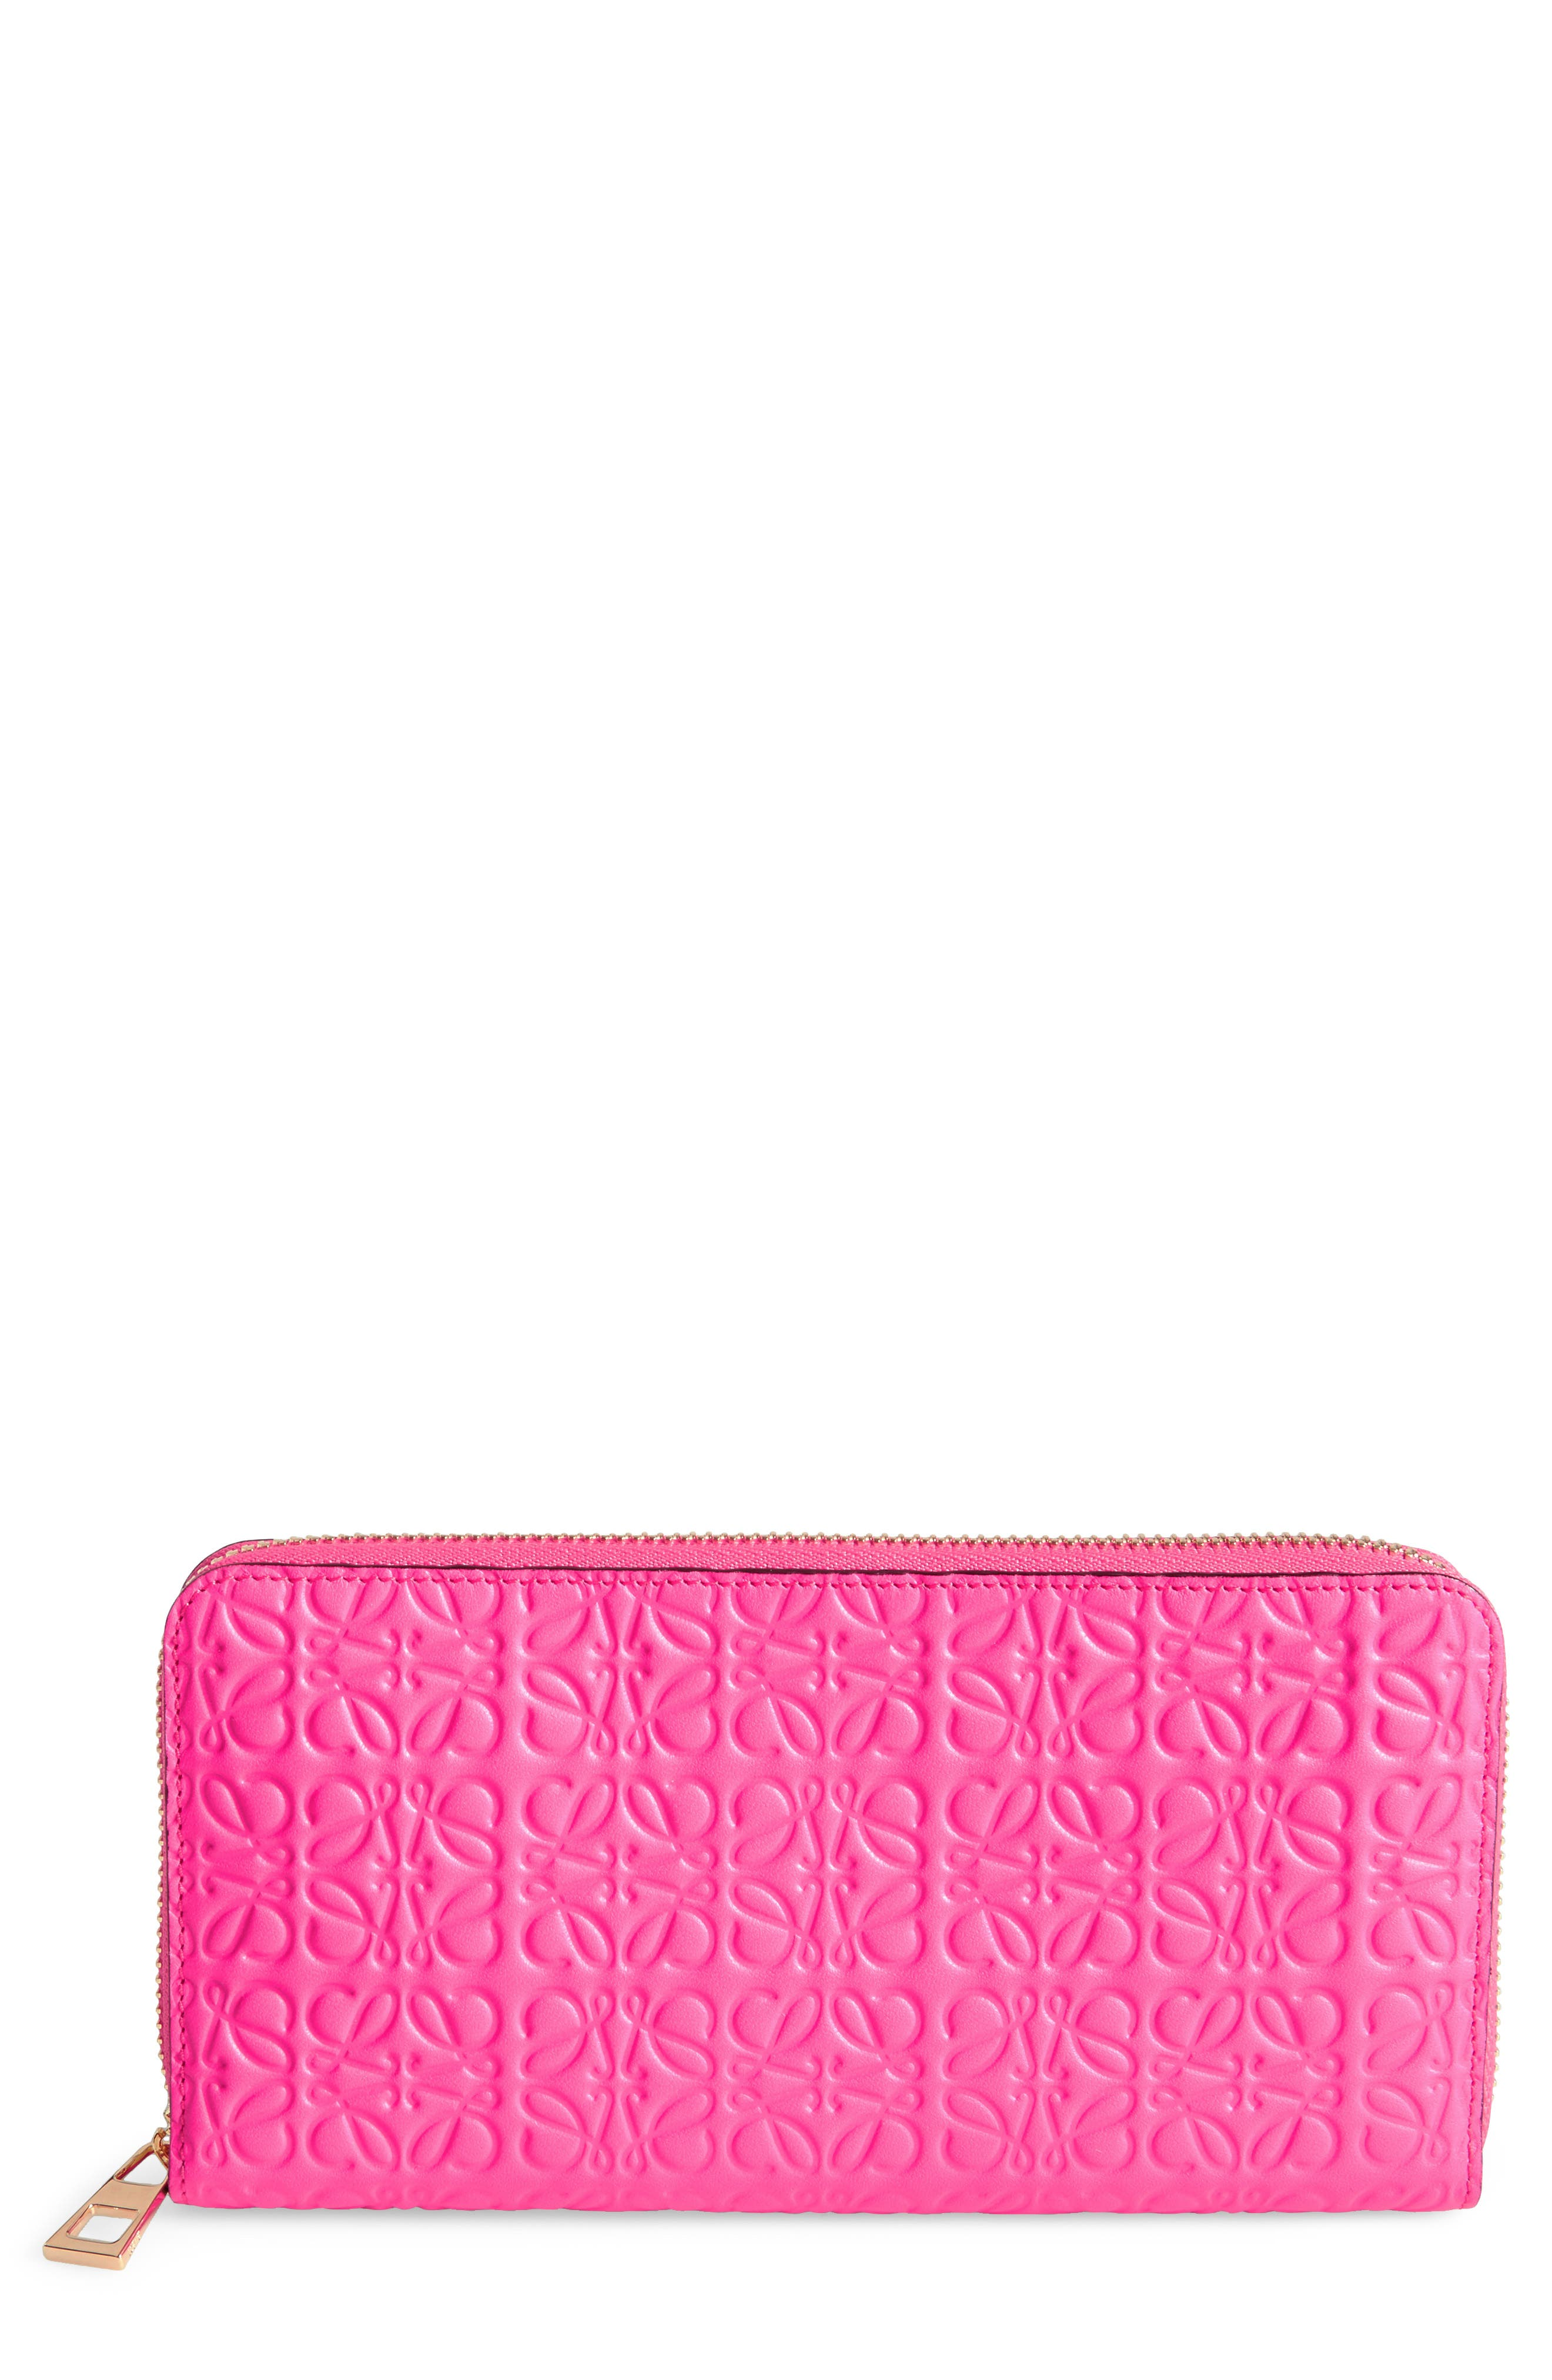 Leather Zip Around Wallet,                         Main,                         color, Shocking Pink